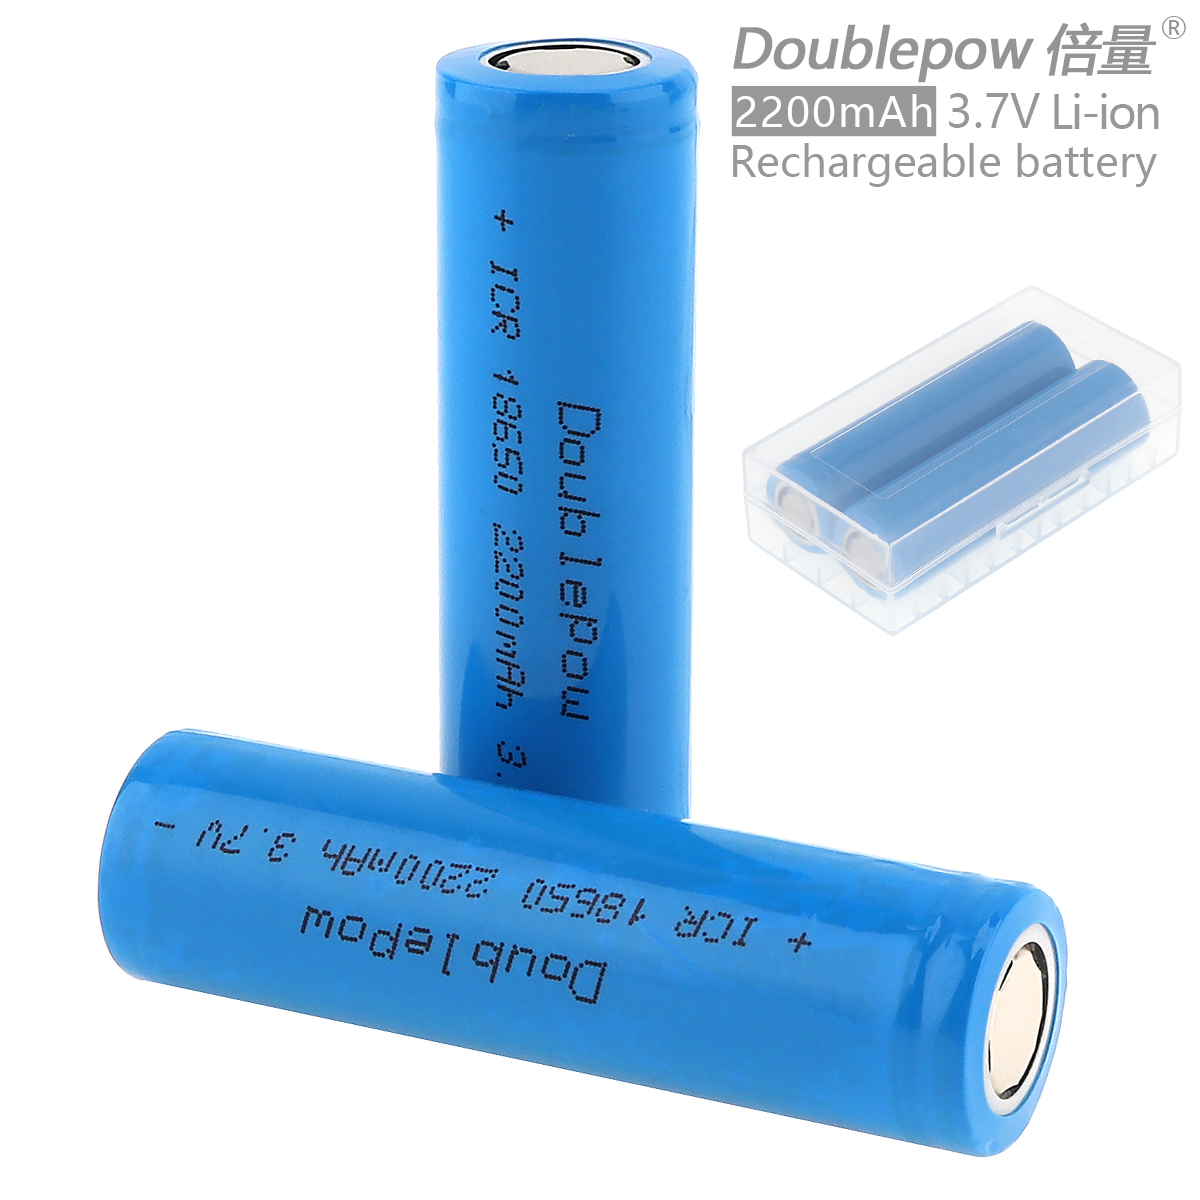 Doublepow 2pcs 18650 2200mAh 3.7V Li-ion Rechargeable Battery with Safety Relief Valve + Portable Battery Storage Box